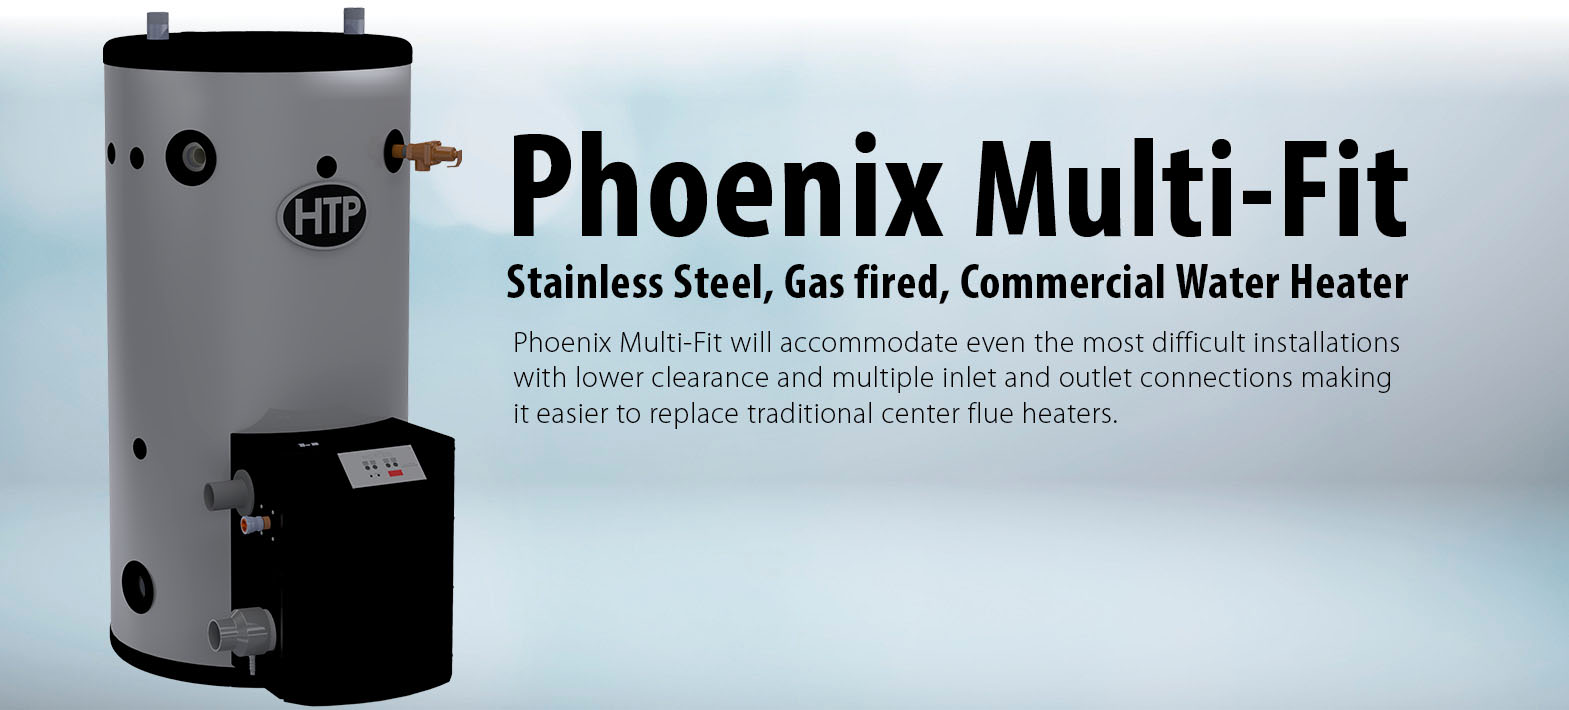 Phoenix Multi-Fit Water Heater